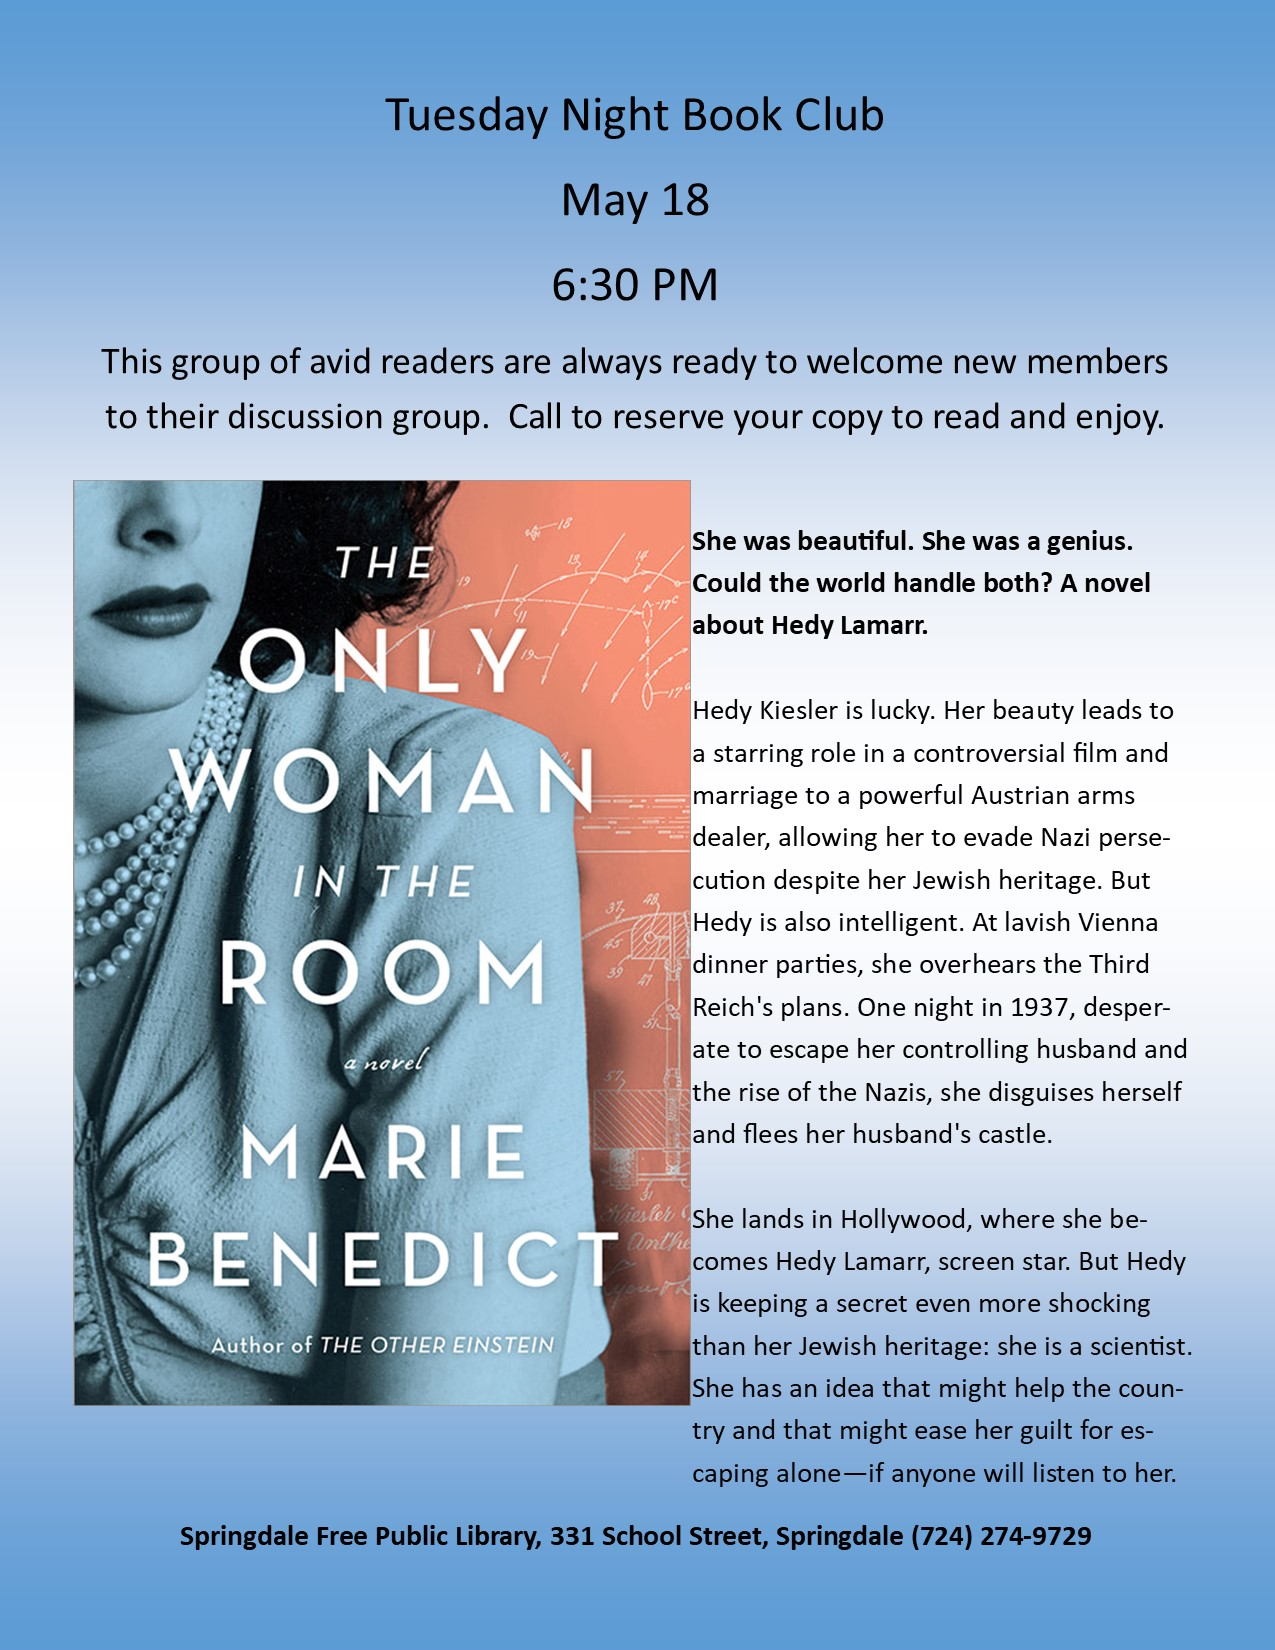 Tuesday Night Book Club